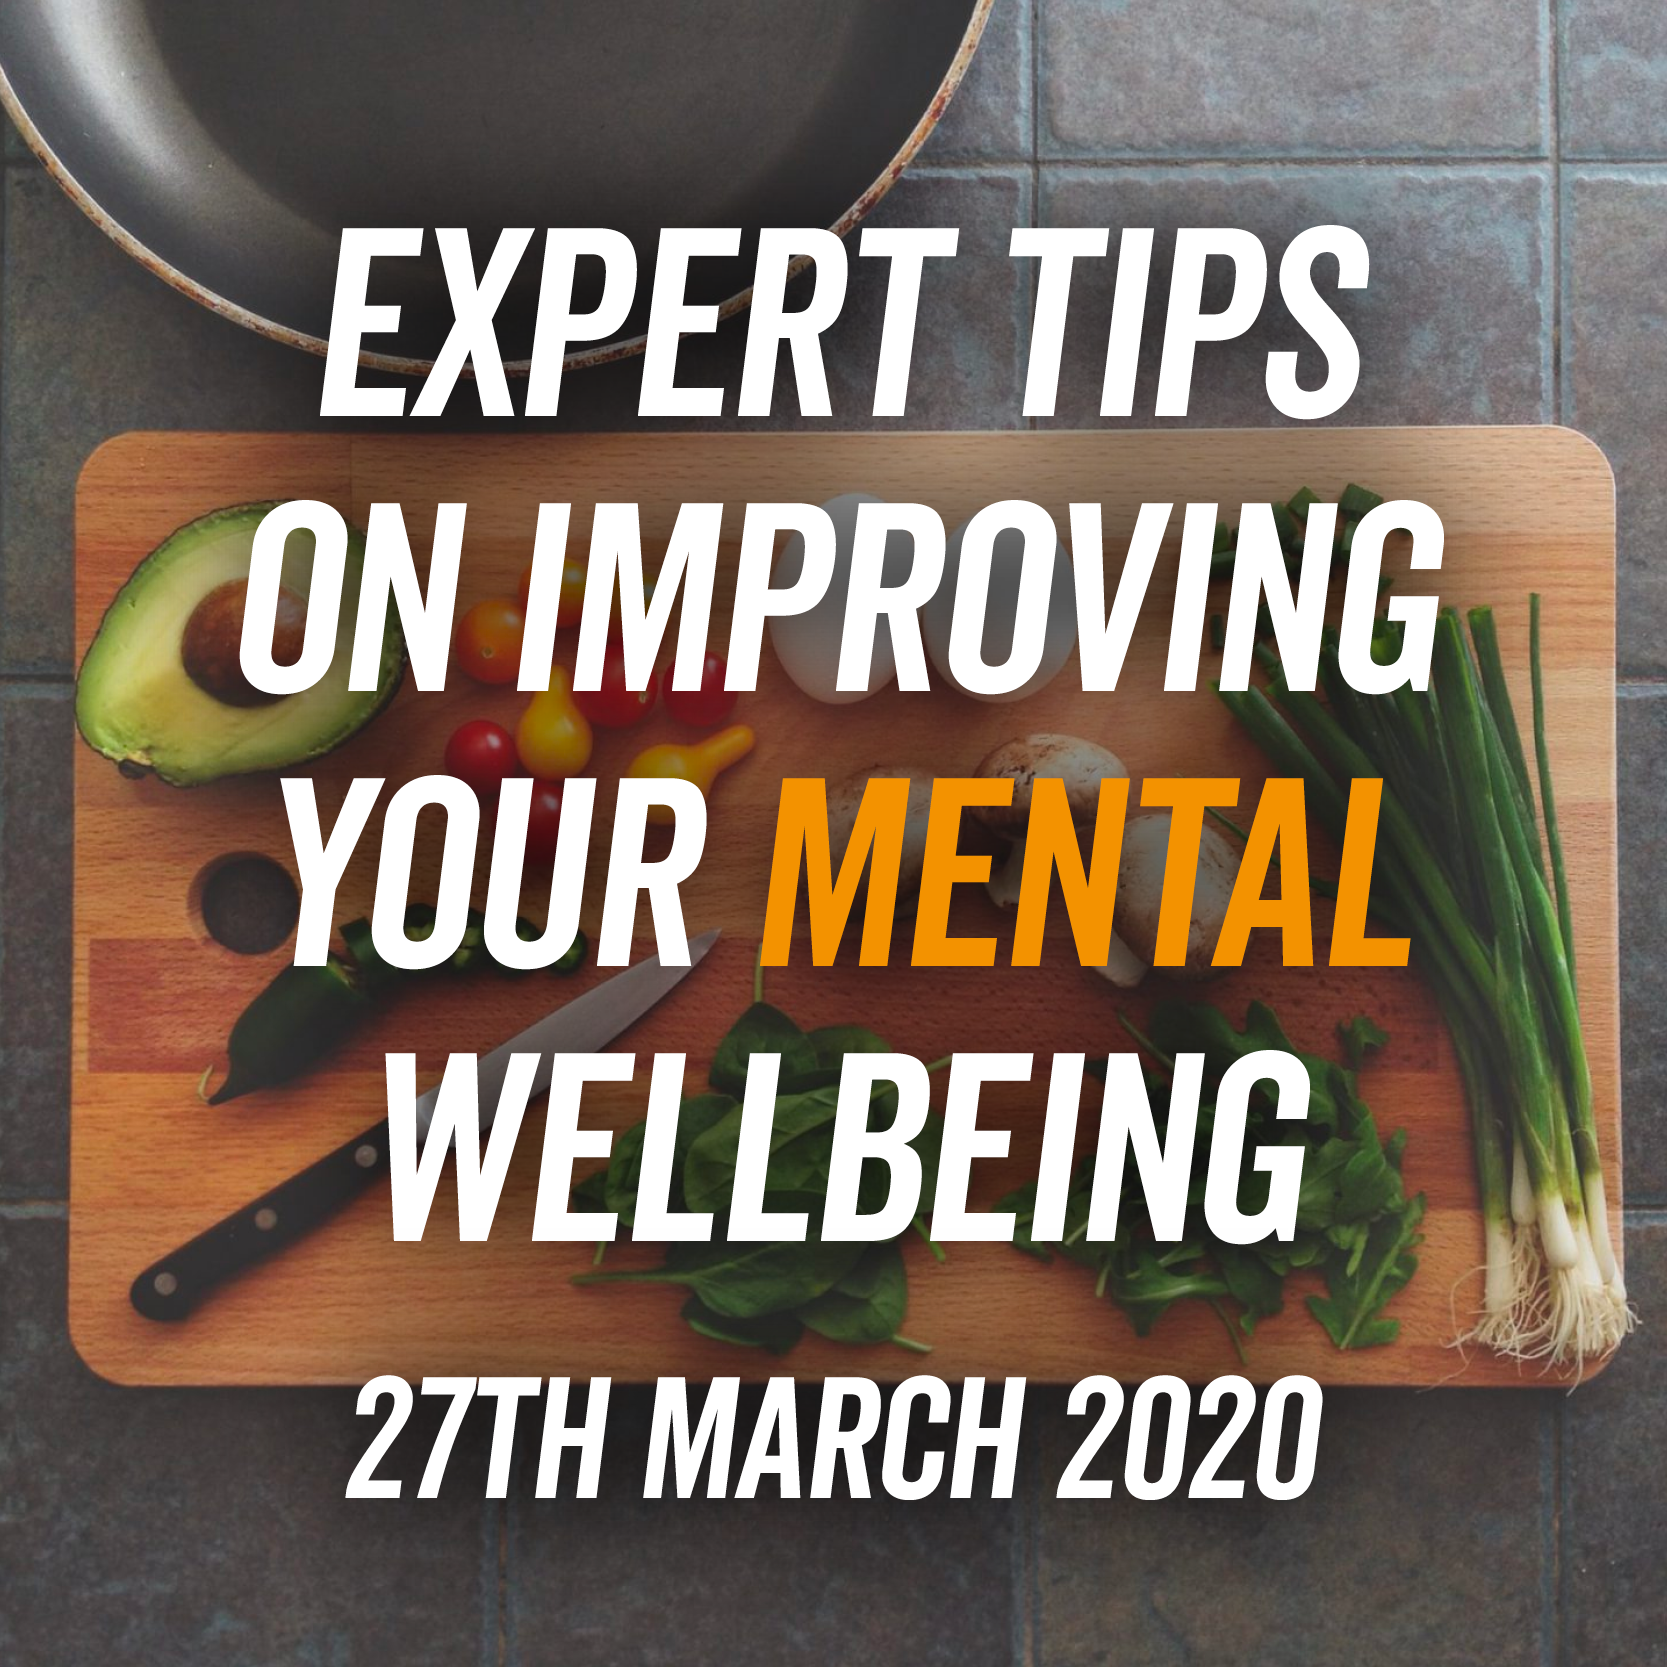 Expert Tips On Improving Mental Wellbeing